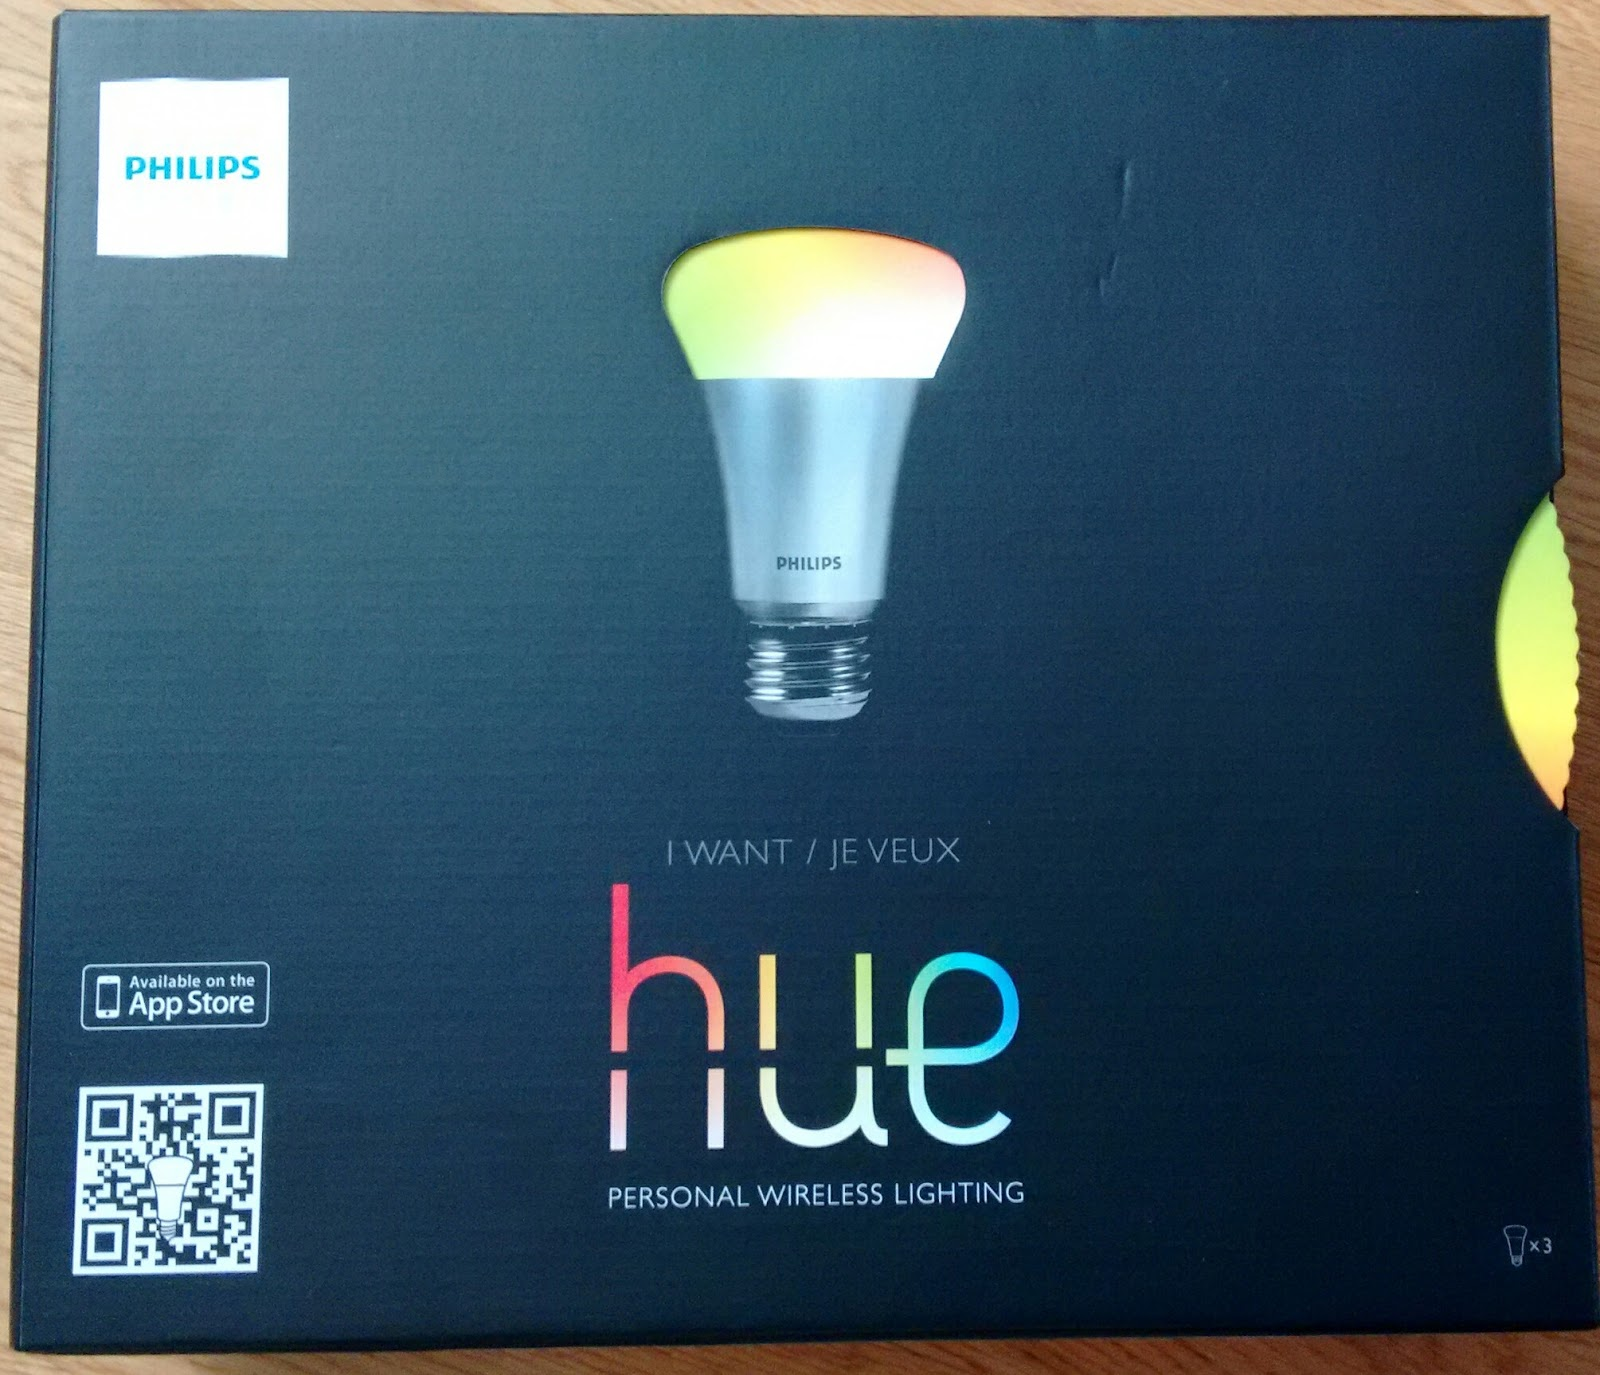 philips hue beleuchtungssteuerung per smartphone oder pc private technology and features. Black Bedroom Furniture Sets. Home Design Ideas